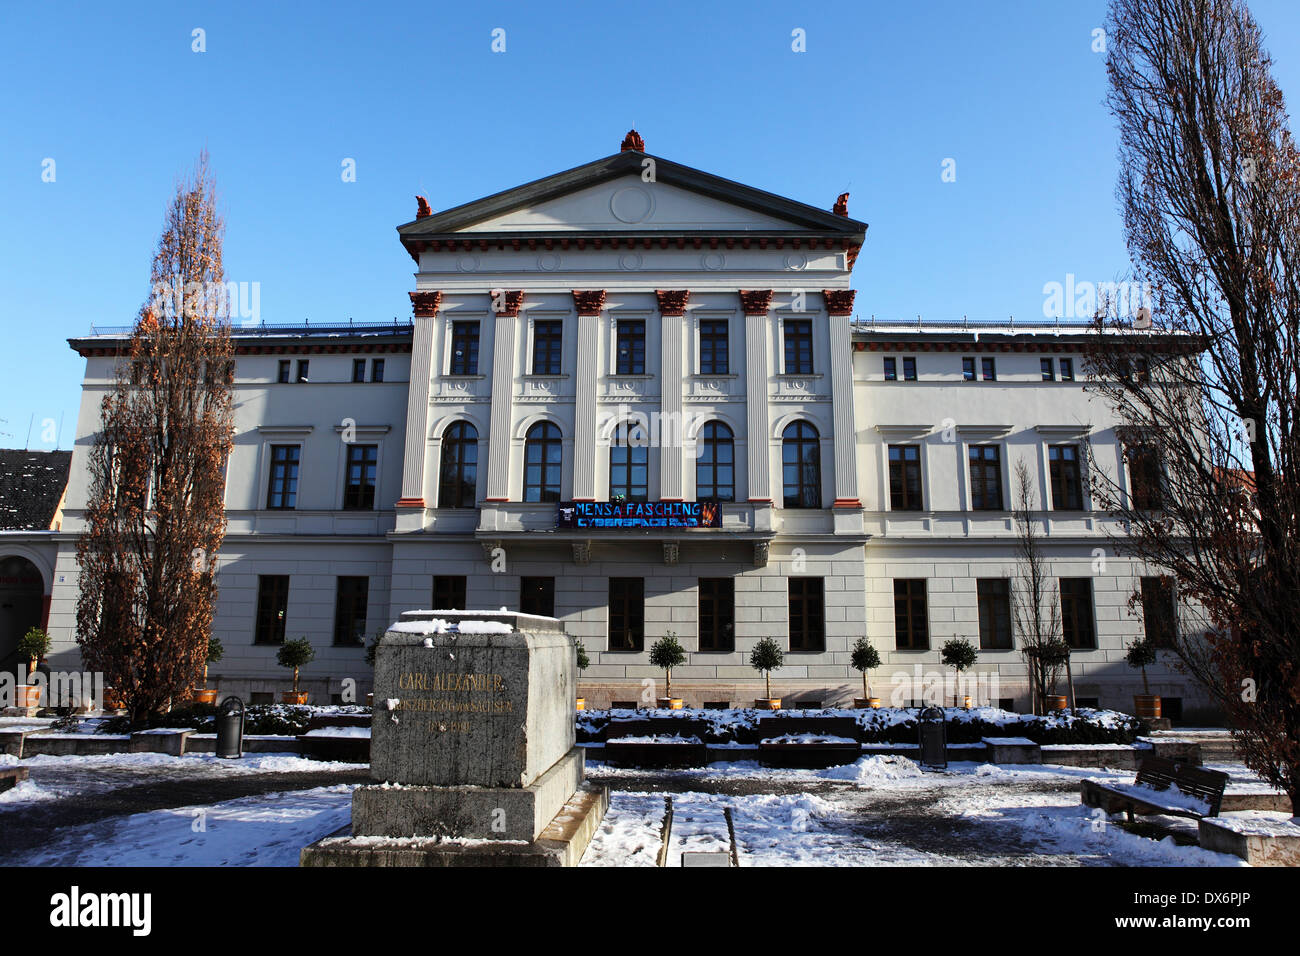 The Jugend und Kultur Zentrum Mon Ami (Youth and Culture Centre Mon Ami) in Weimar, Germany. - Stock Image